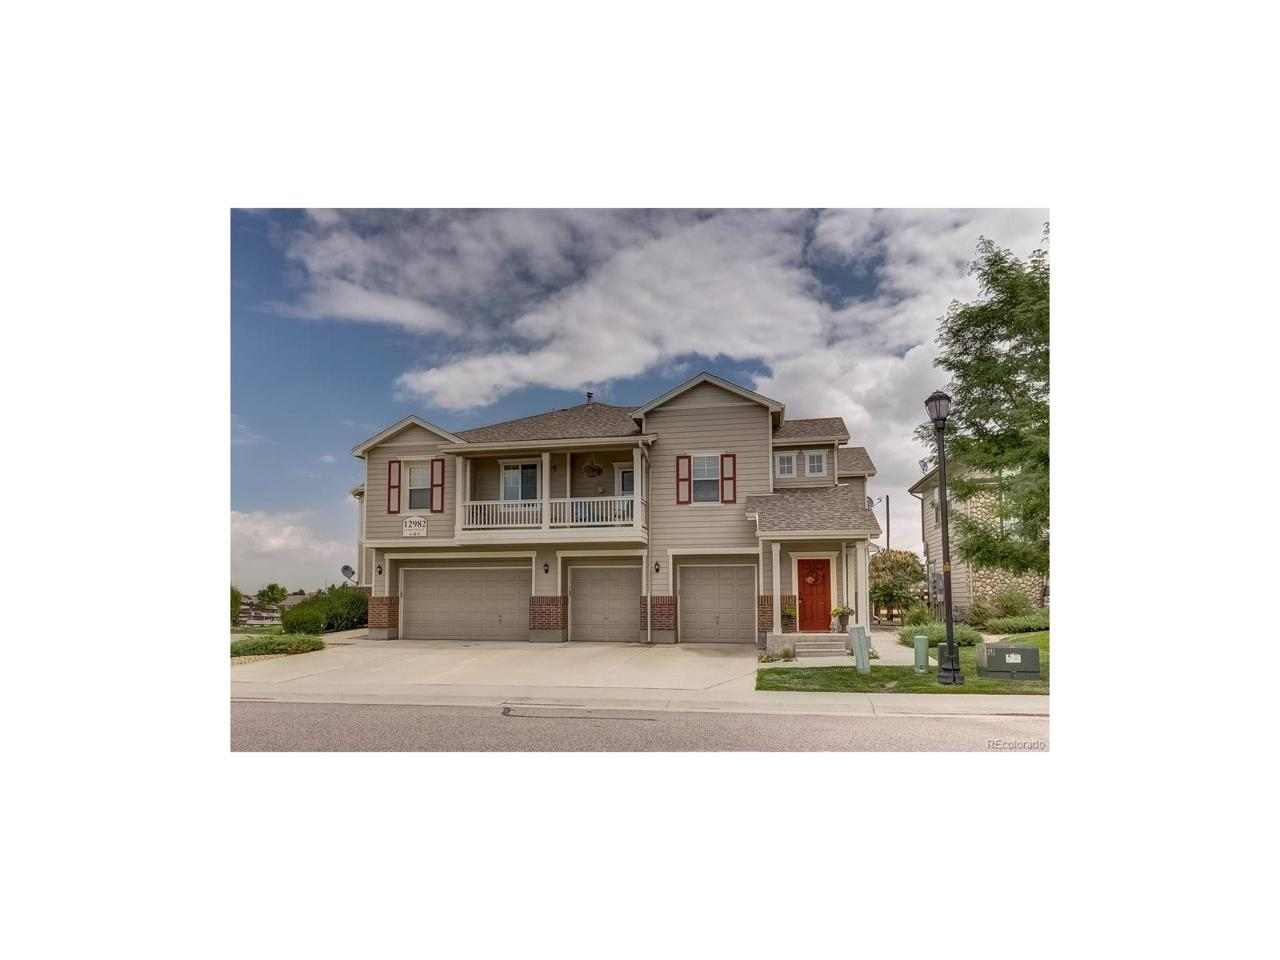 12982 Grant Circle C, Thornton, CO 80241 (MLS #6794468) :: 8z Real Estate